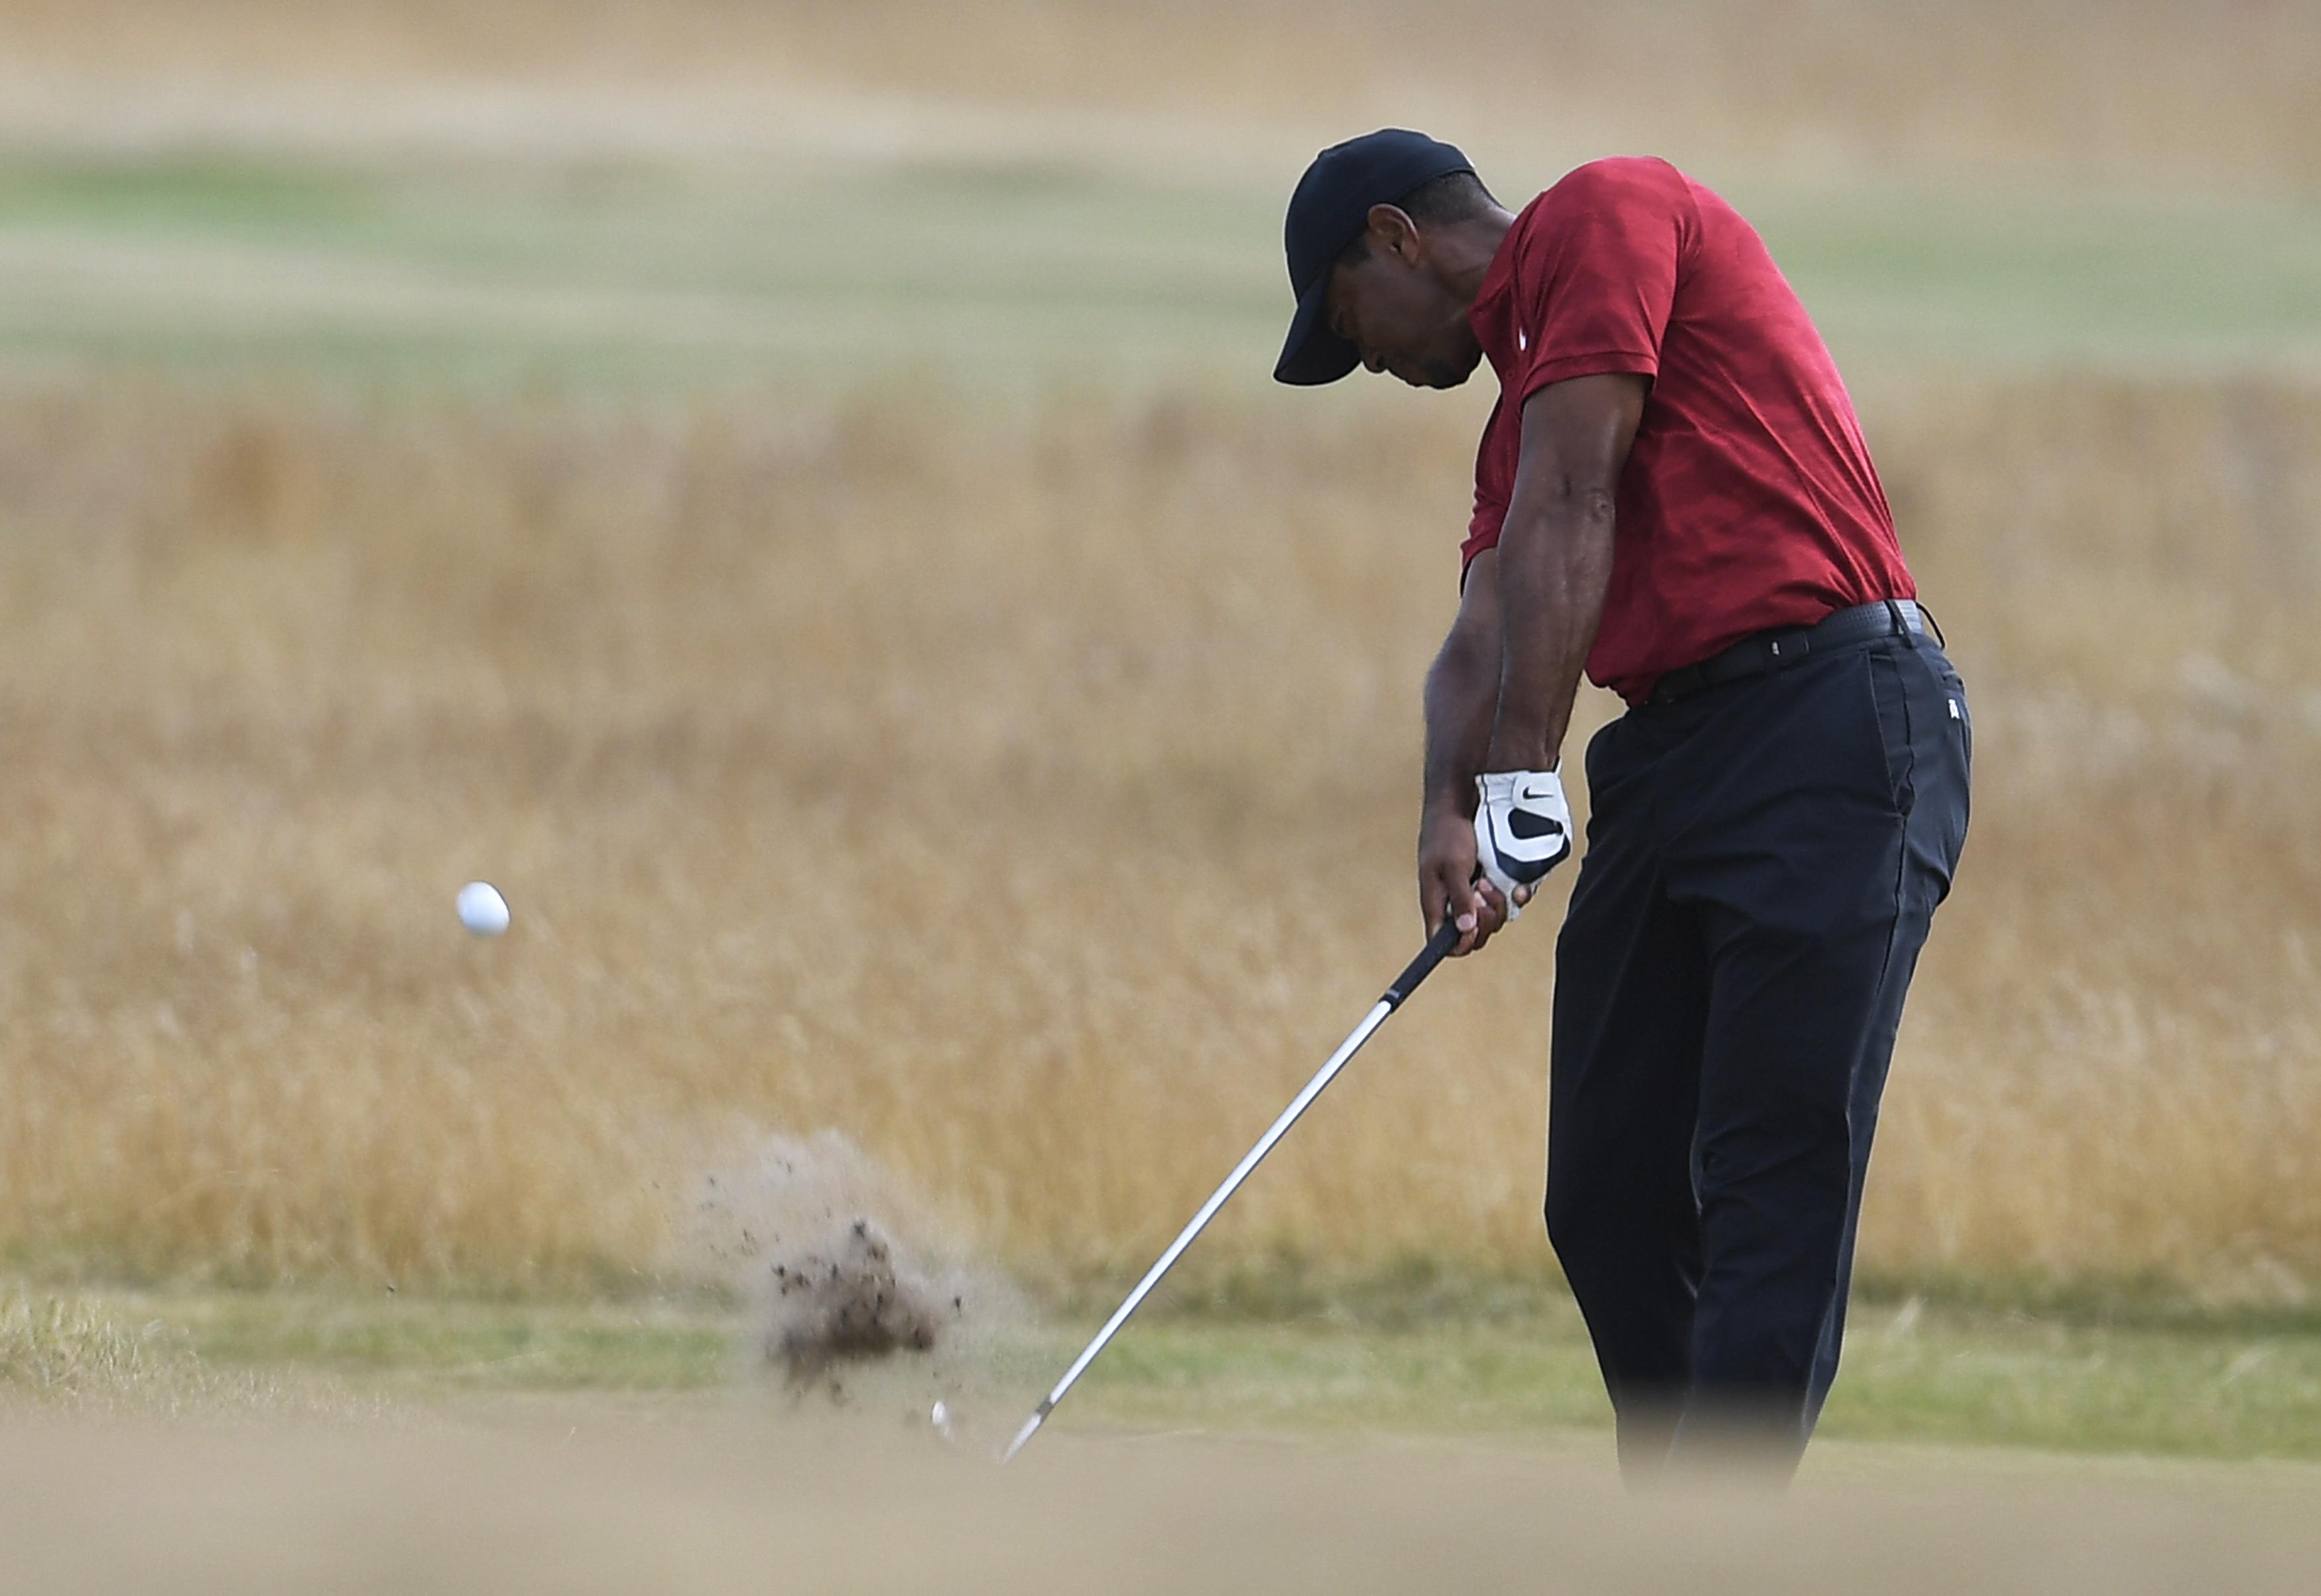 Woods, 42, has broken into the top 50 in the world rankings following his T6 finish